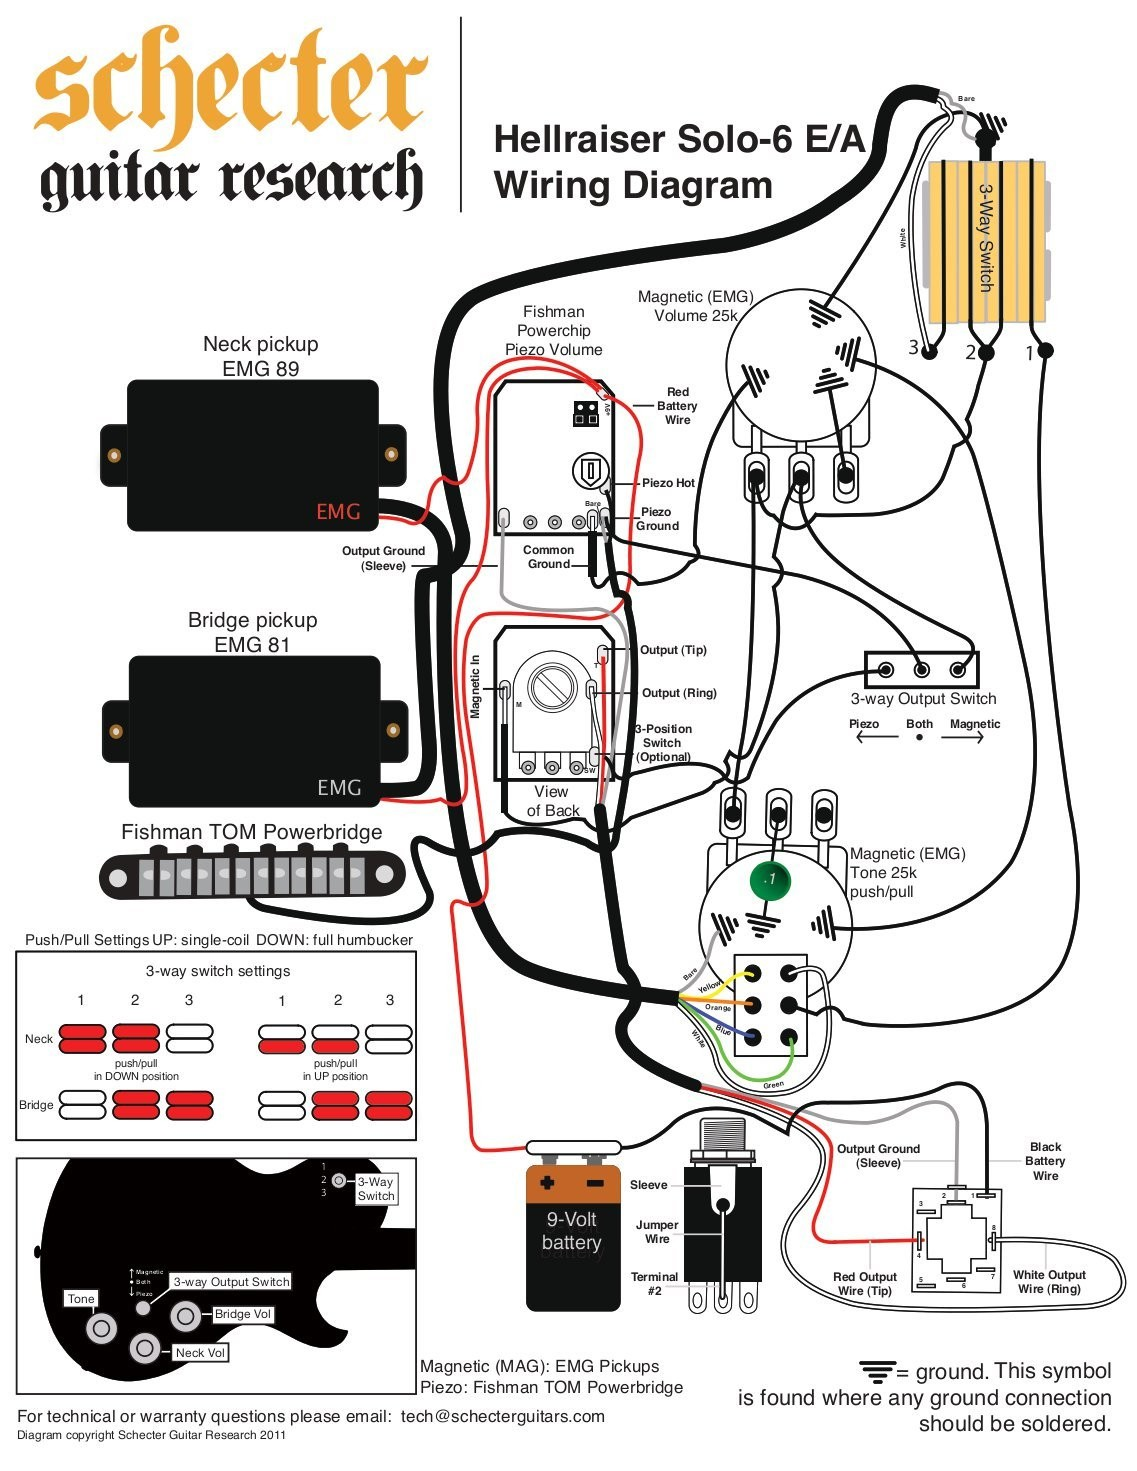 Bbb Industries Wiring Diagram New Image 3 Position Rocker Switch Toggle On 2 Way